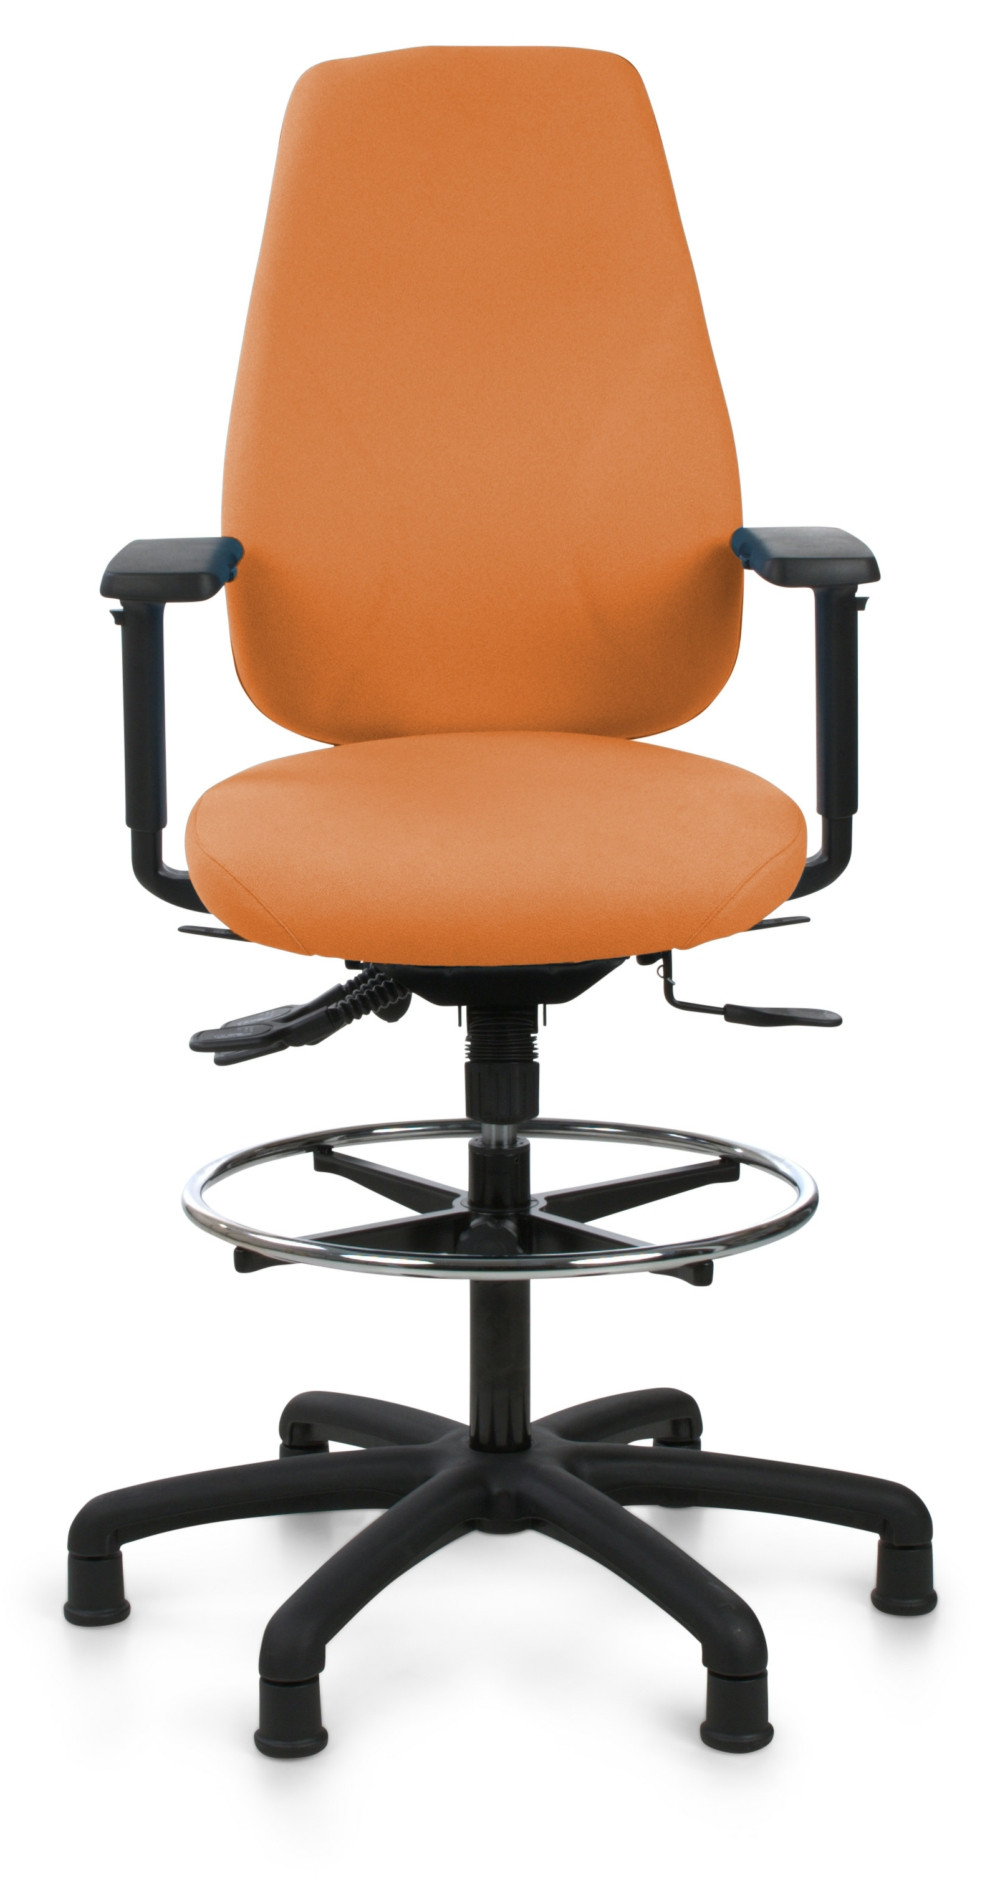 Best ideas about Best Affordable Office Chair . Save or Pin Best Affordable Ergonomic fice Chair Brilliant Lumbar Now.